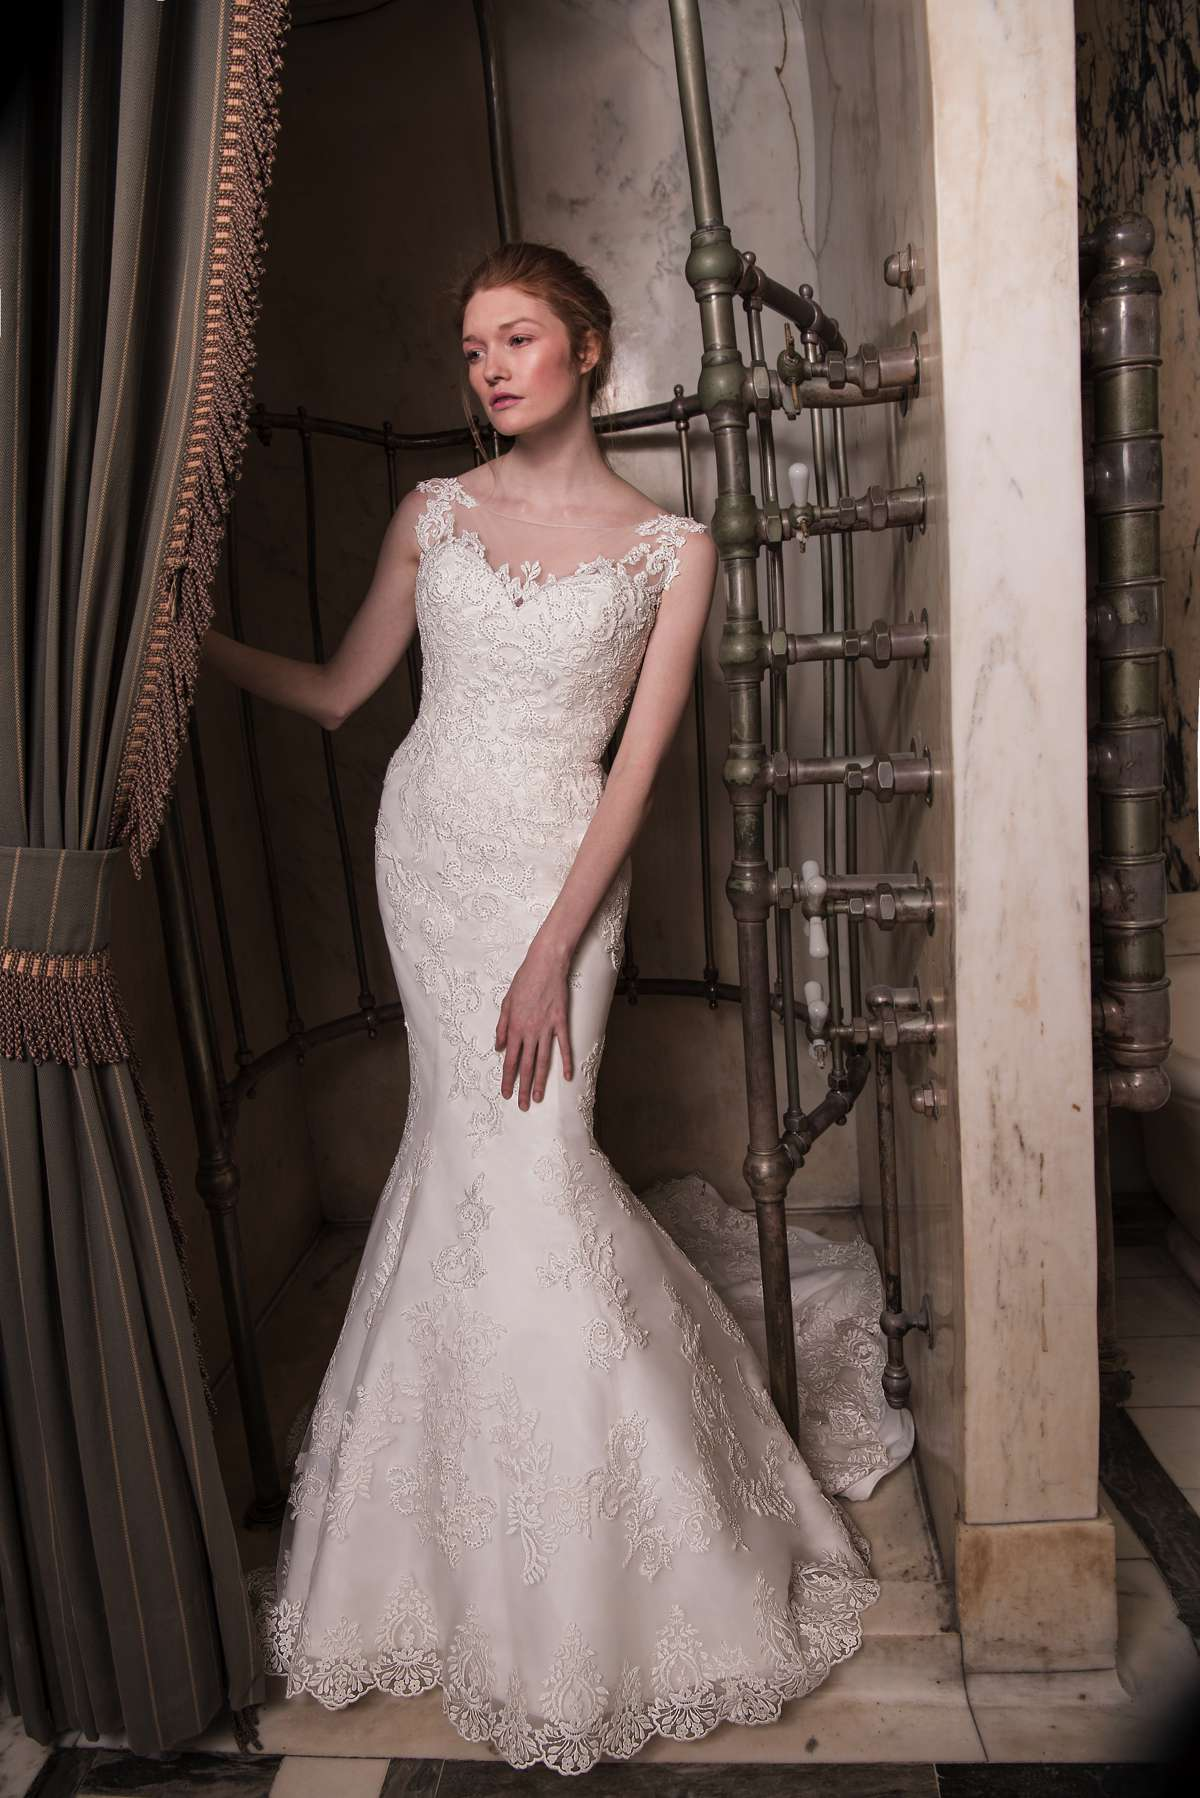 Win a wedding dress with chloe bridals love our wedding rose ombrellifo Gallery